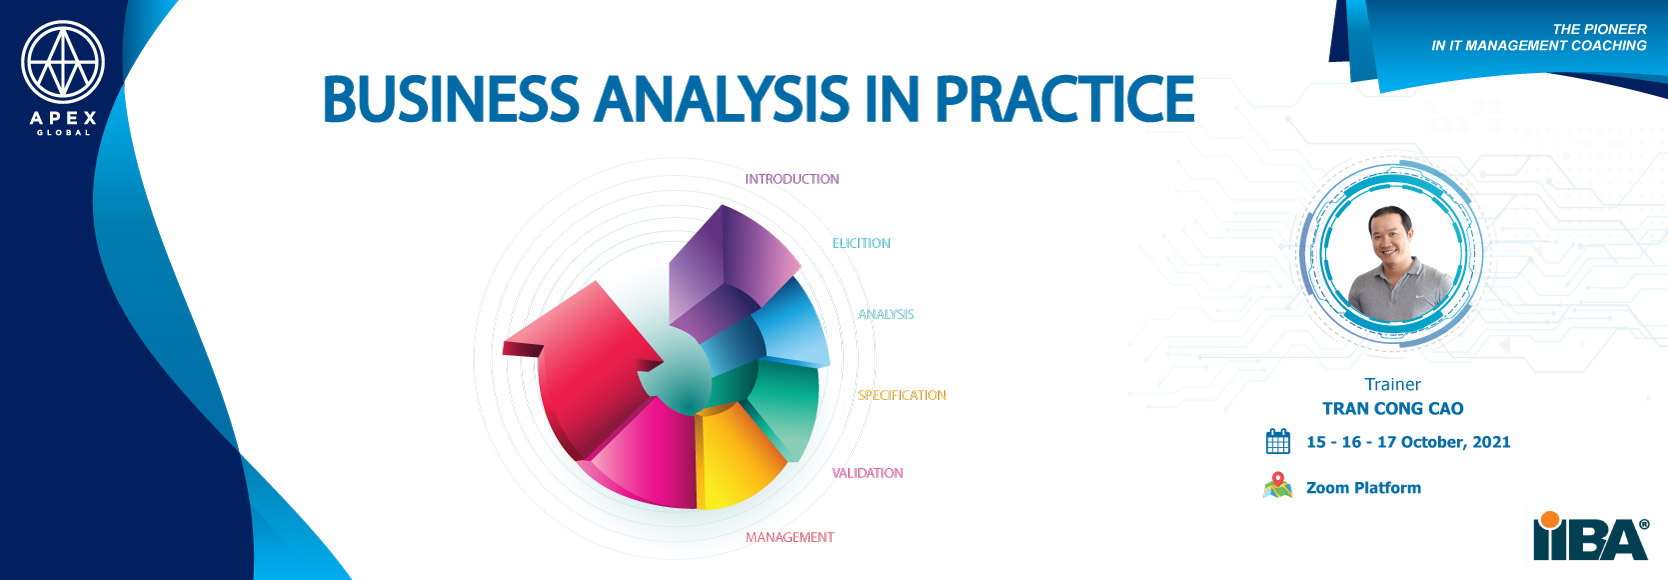 Business-Analysis-in-Practice